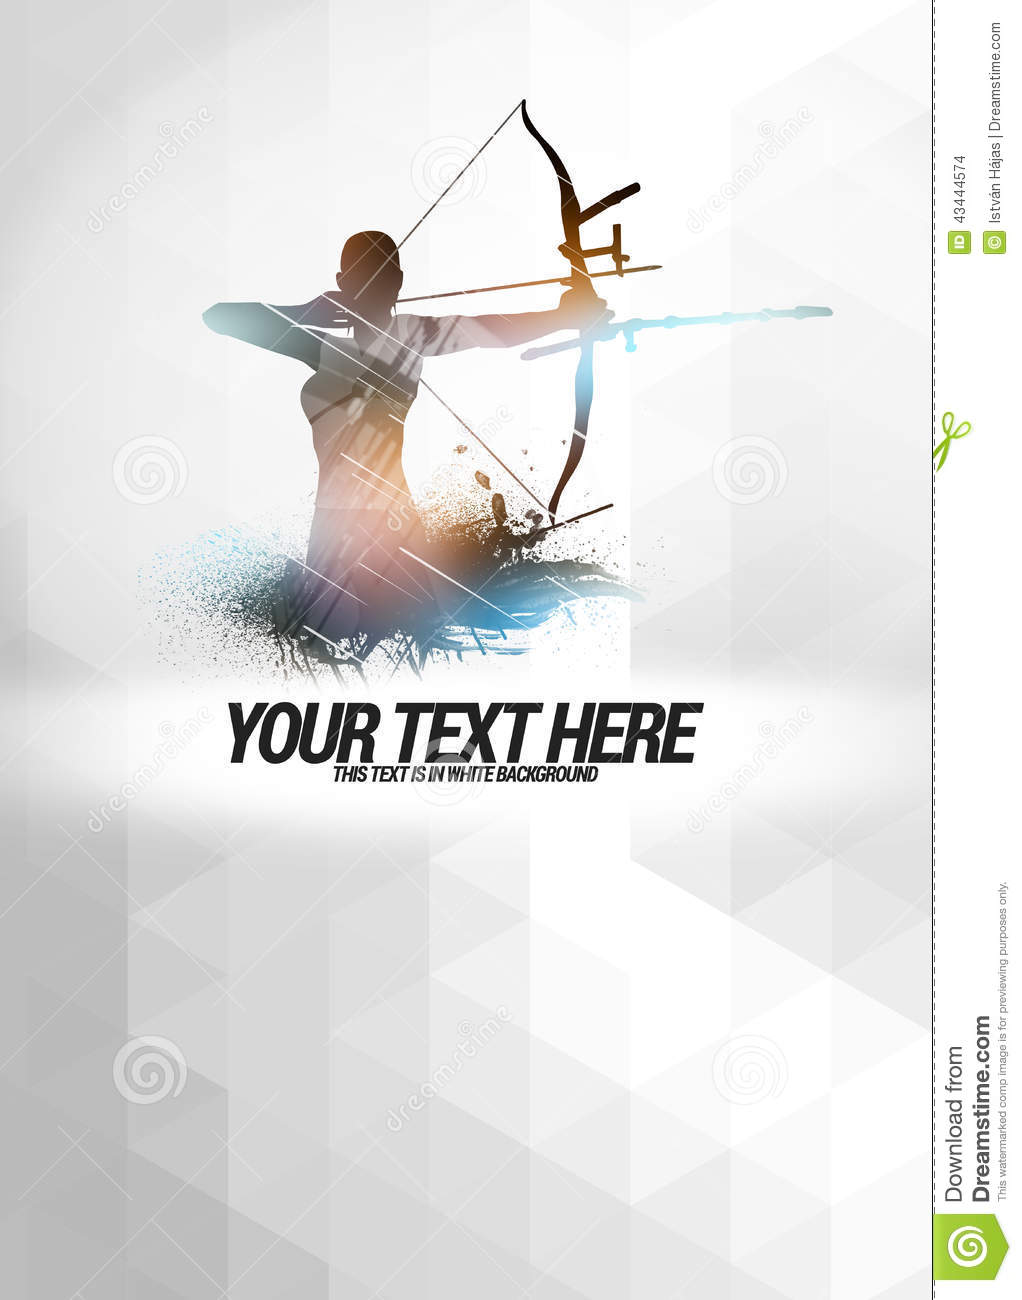 Dirty Girl Wallpaper Download Archery Background Stock Illustration Image 43444574